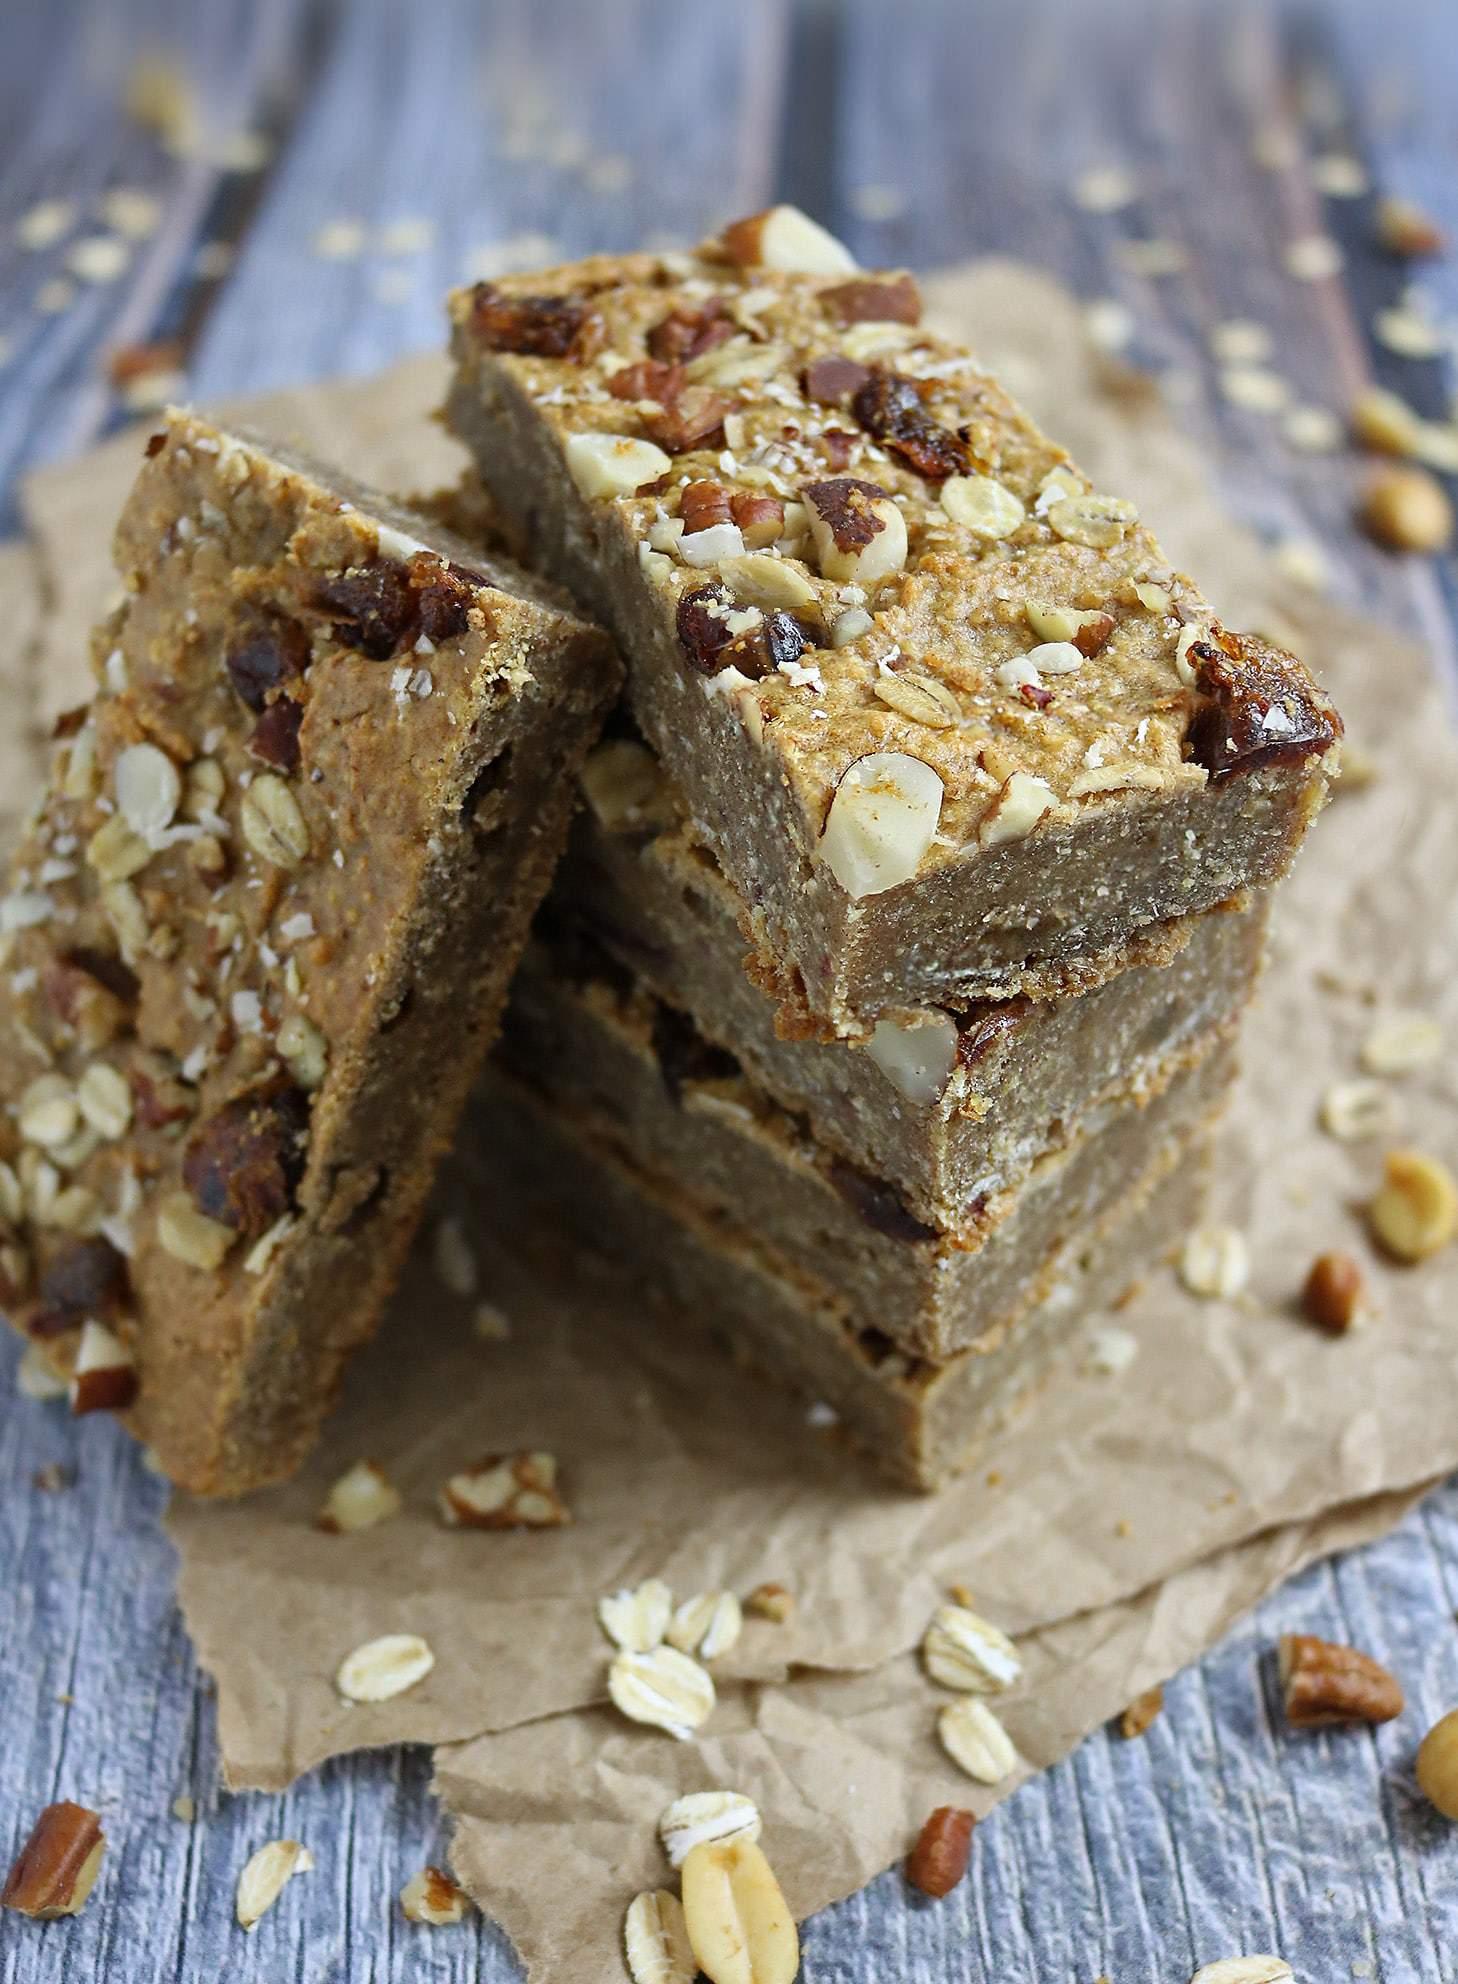 Simply Nutty Bars aka Peanut Butter Oat Breakfast Bars